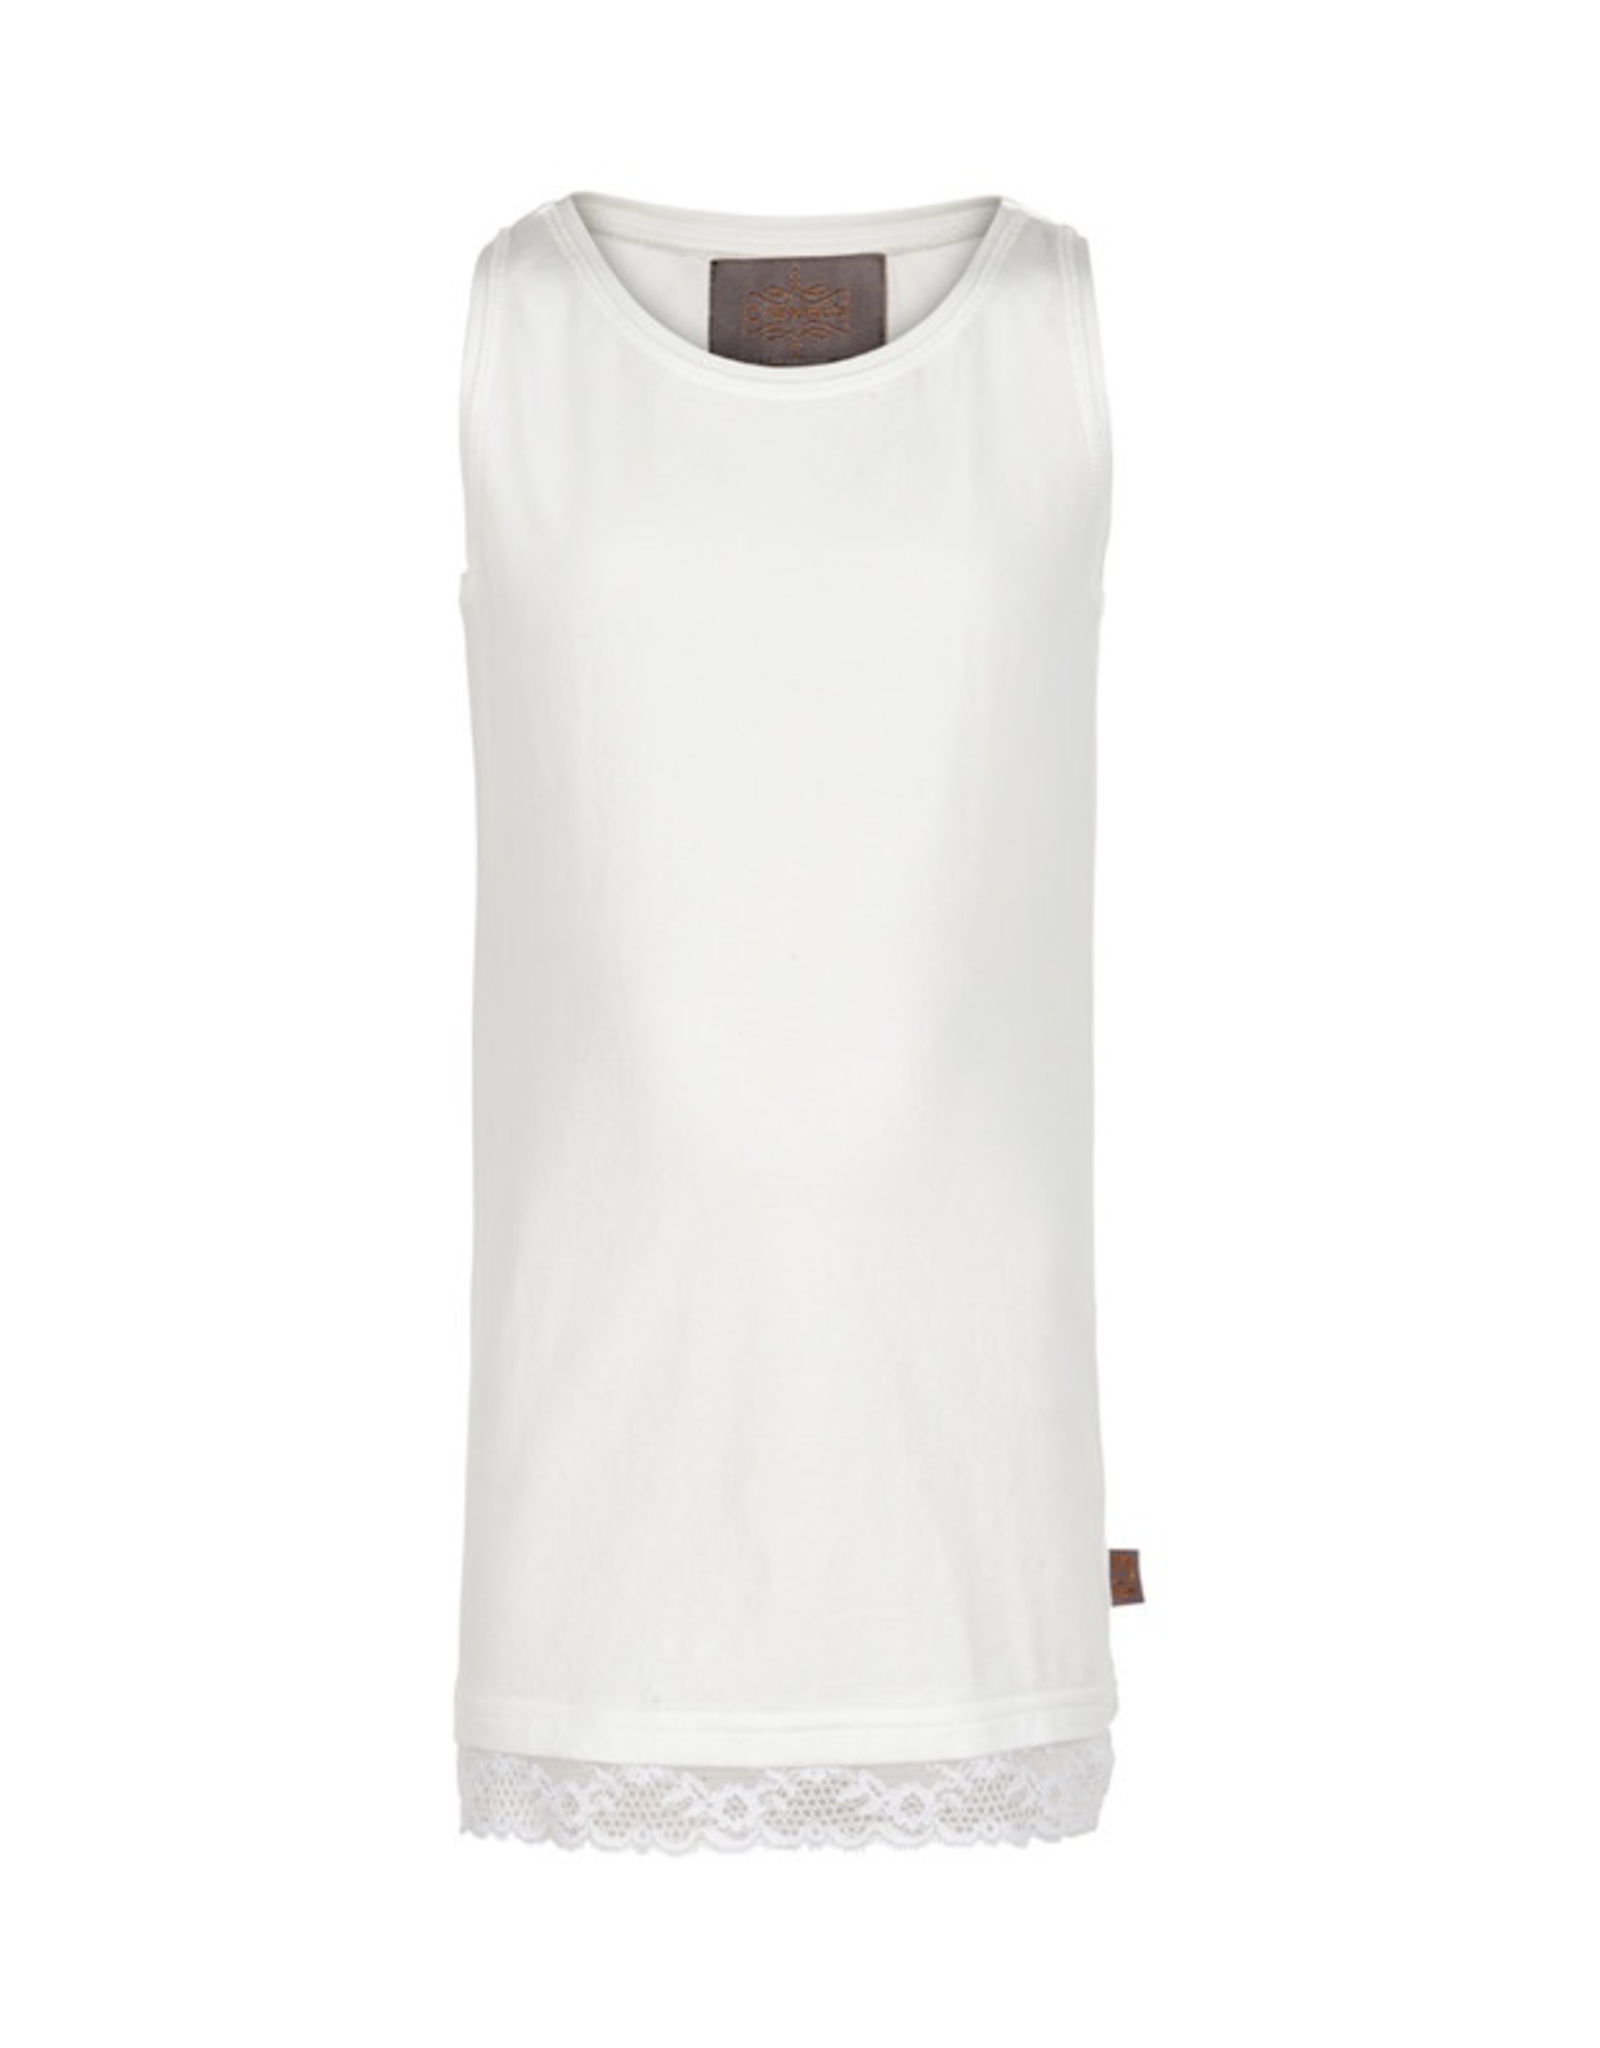 Creamie Lace Tank Top for Girls